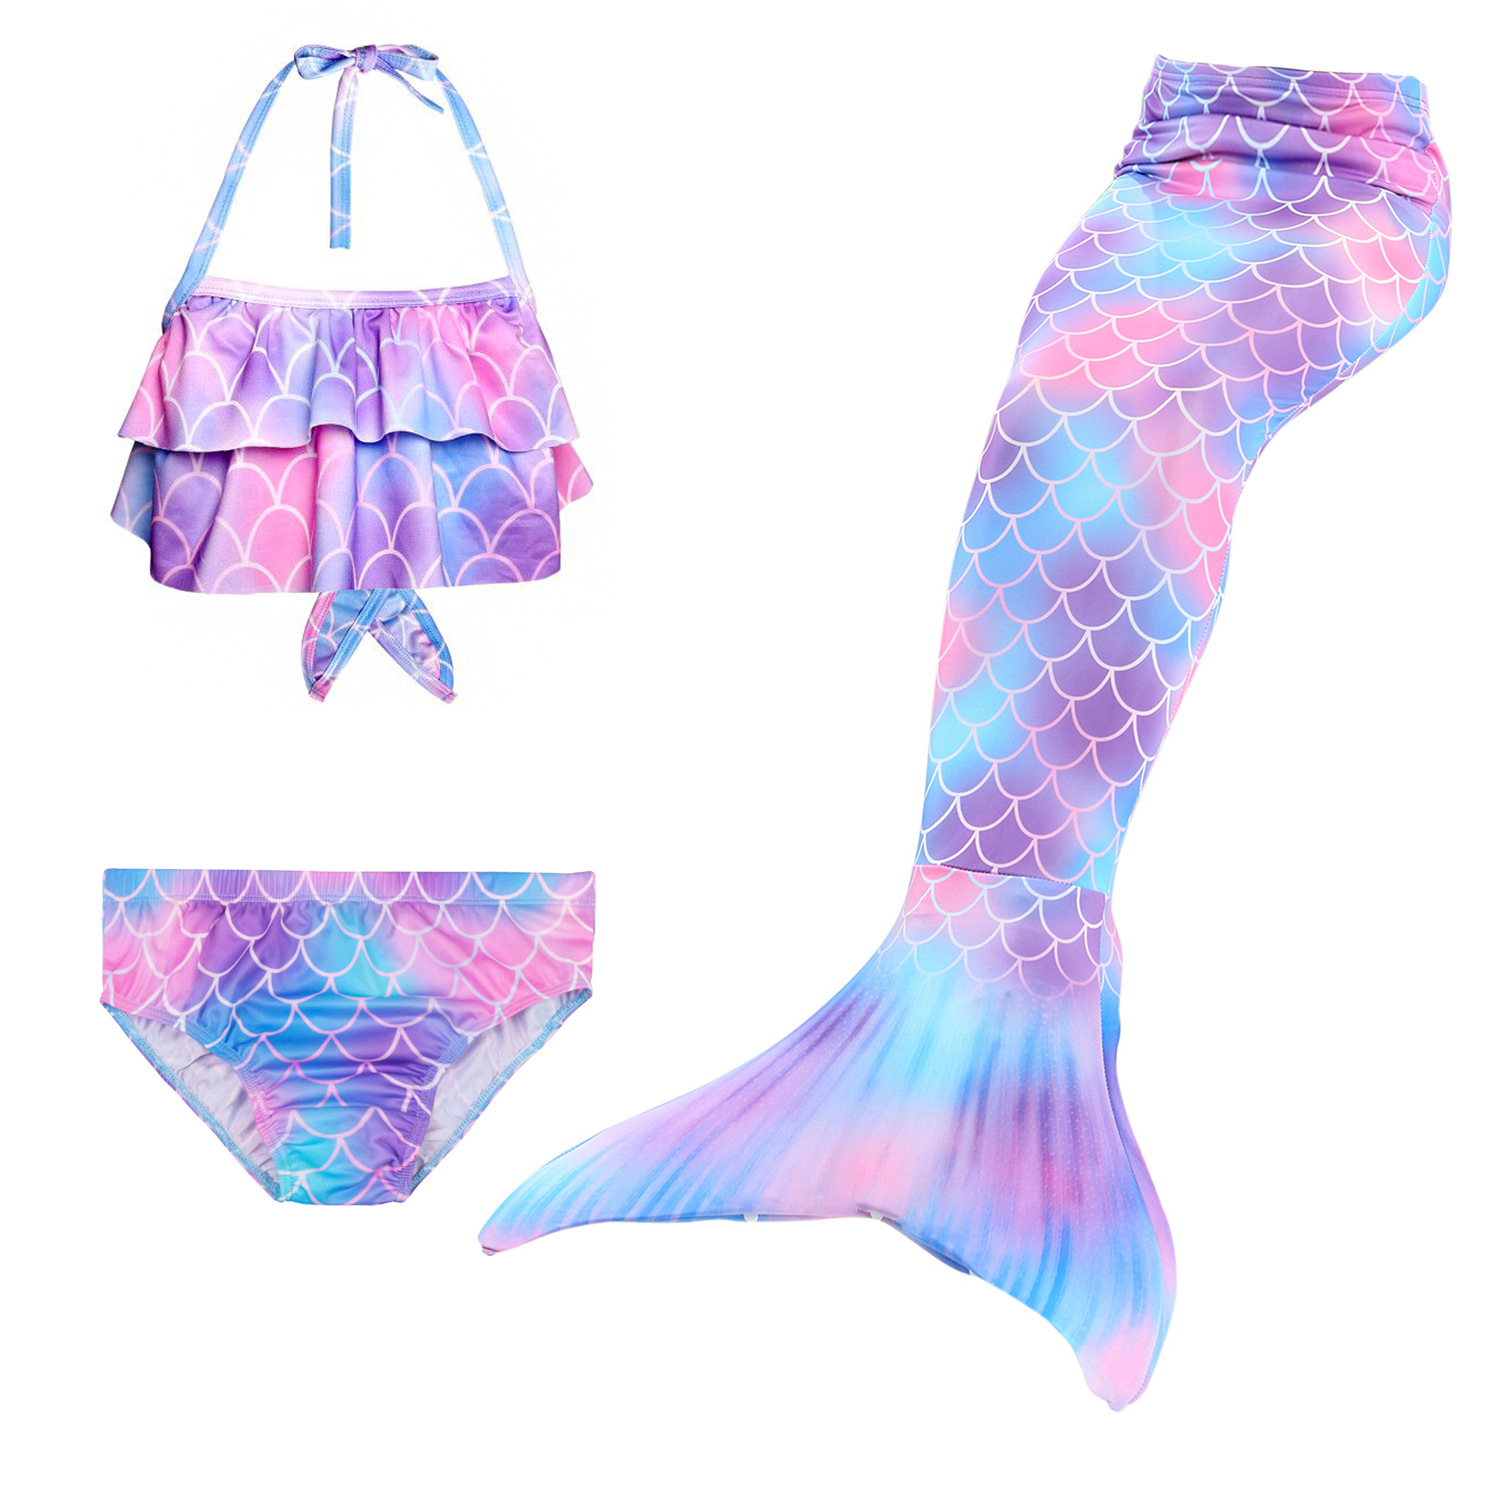 3pcs/Children Mermaid Tails For Swimming The Little Mermaid Girls Swimsuit Bikini Set Bathing Suit Party Cosplay Costumes